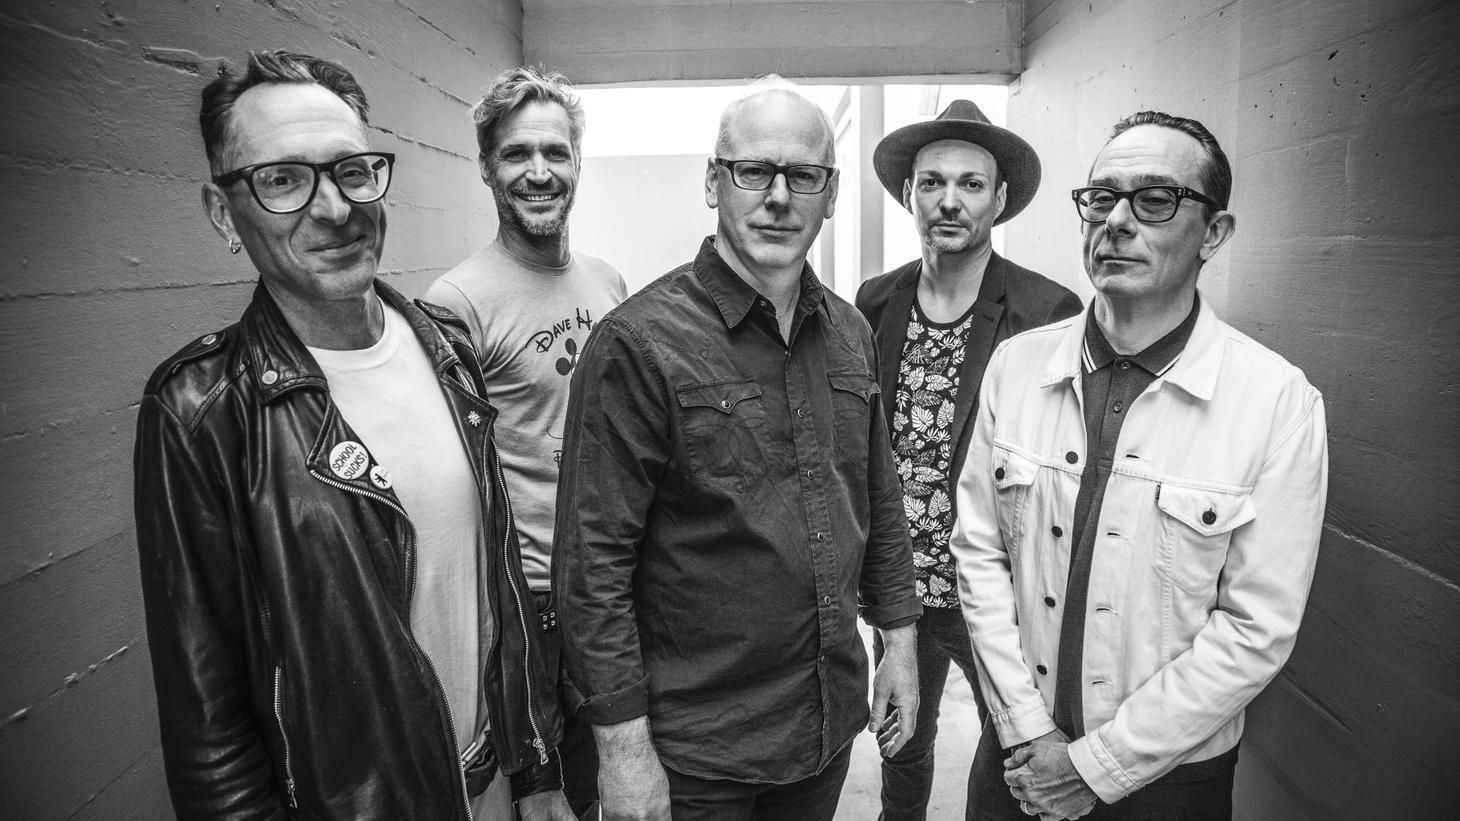 Bad Religion reflects on 40 years in punk rock, from underground to mainstream